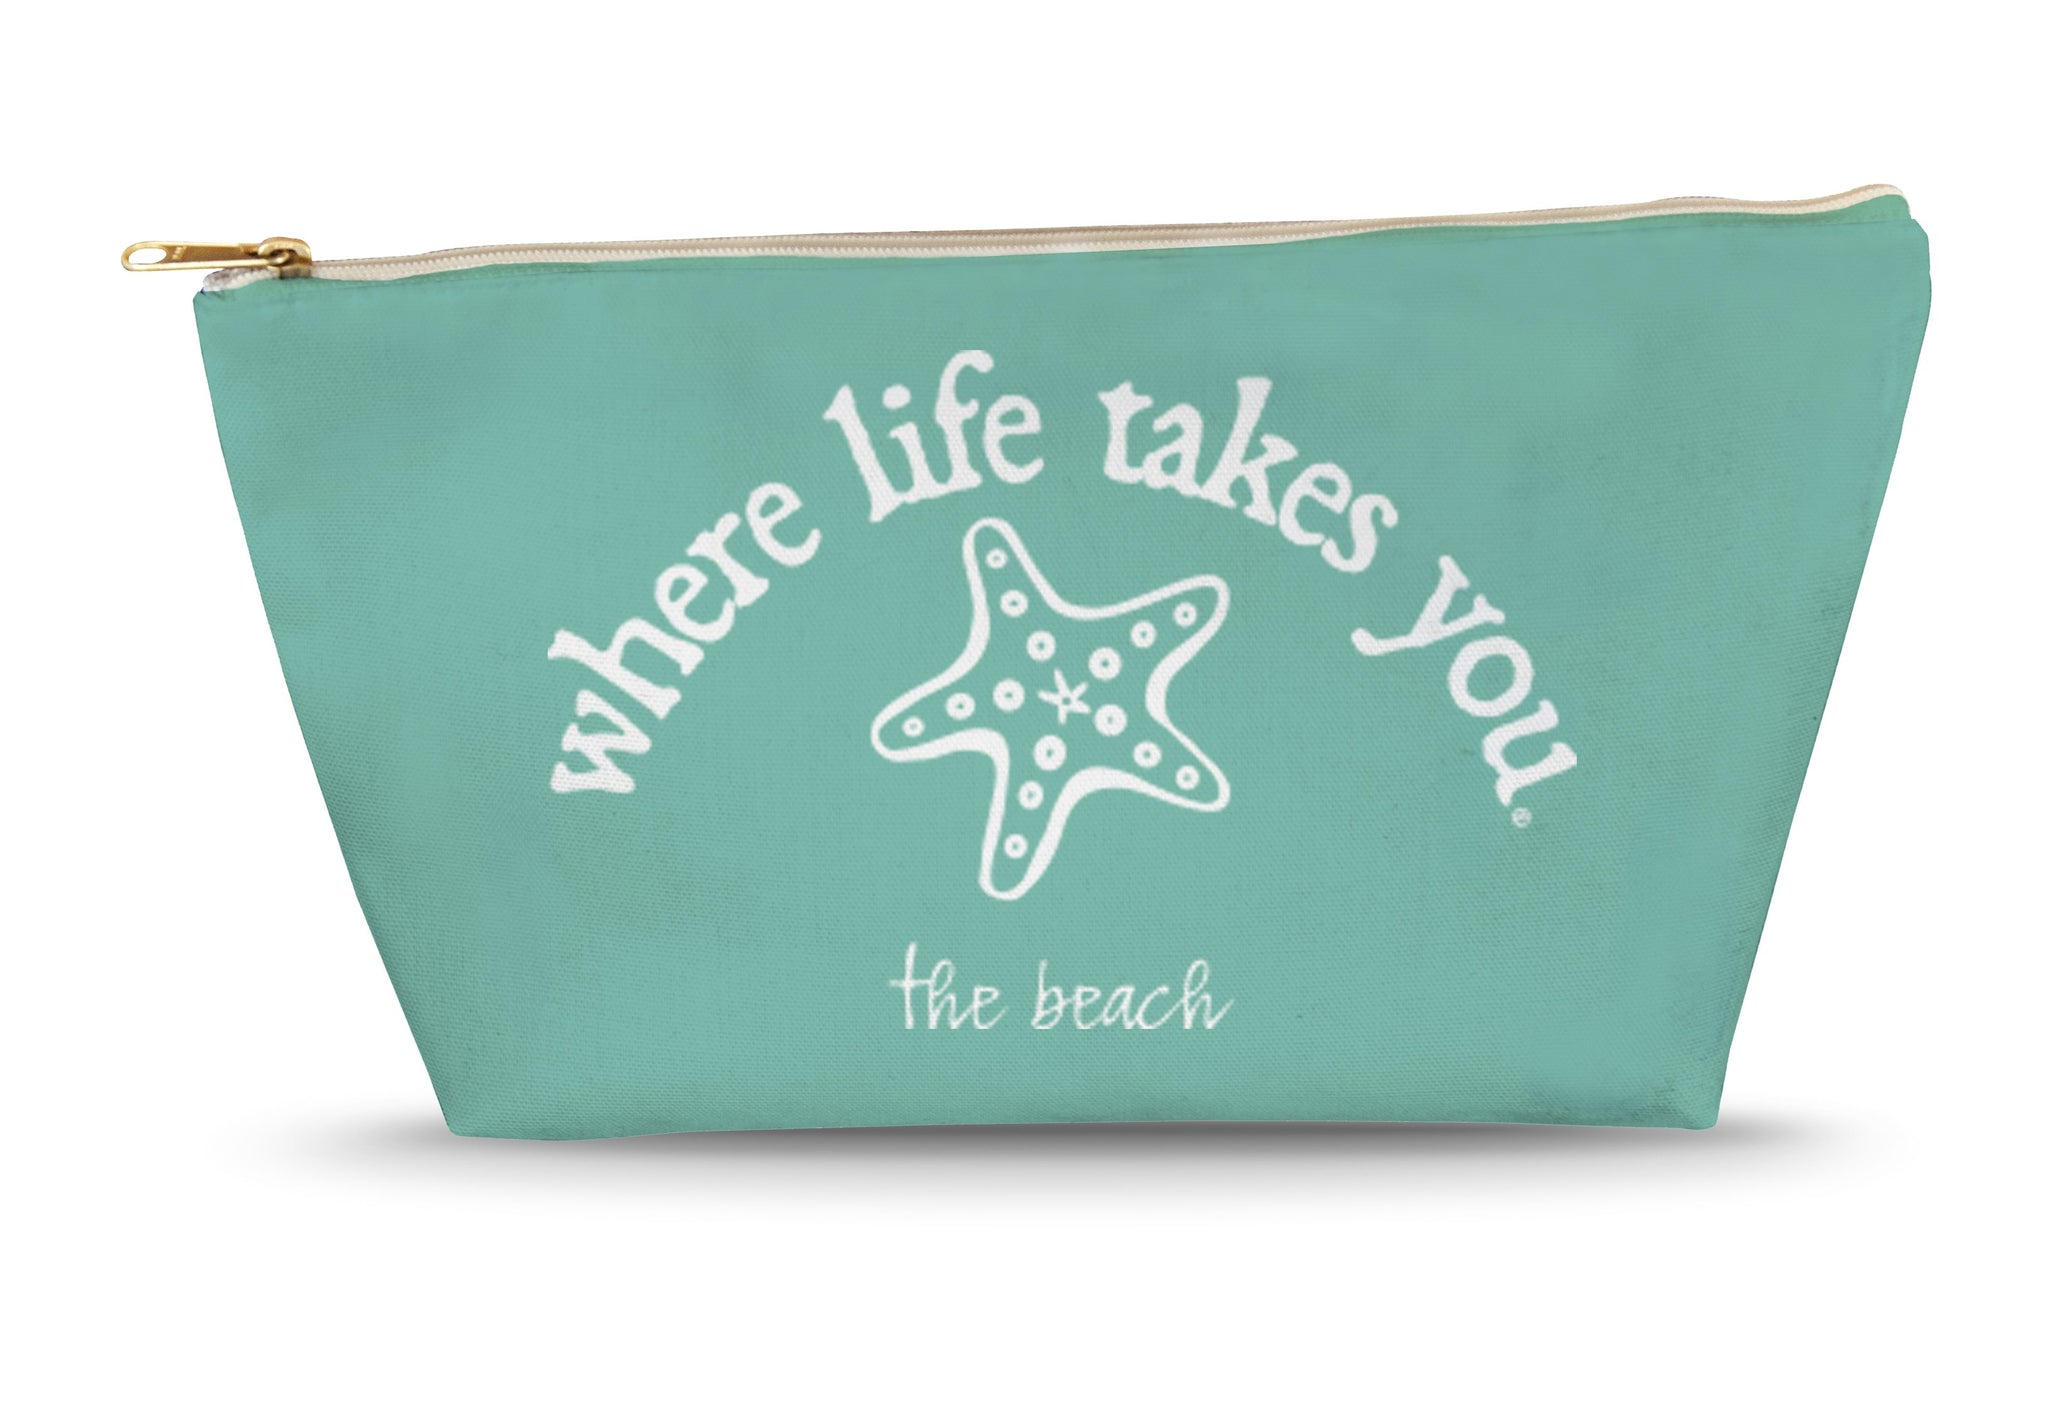 The Beach (Chalky Mint) Large Accessory Bag